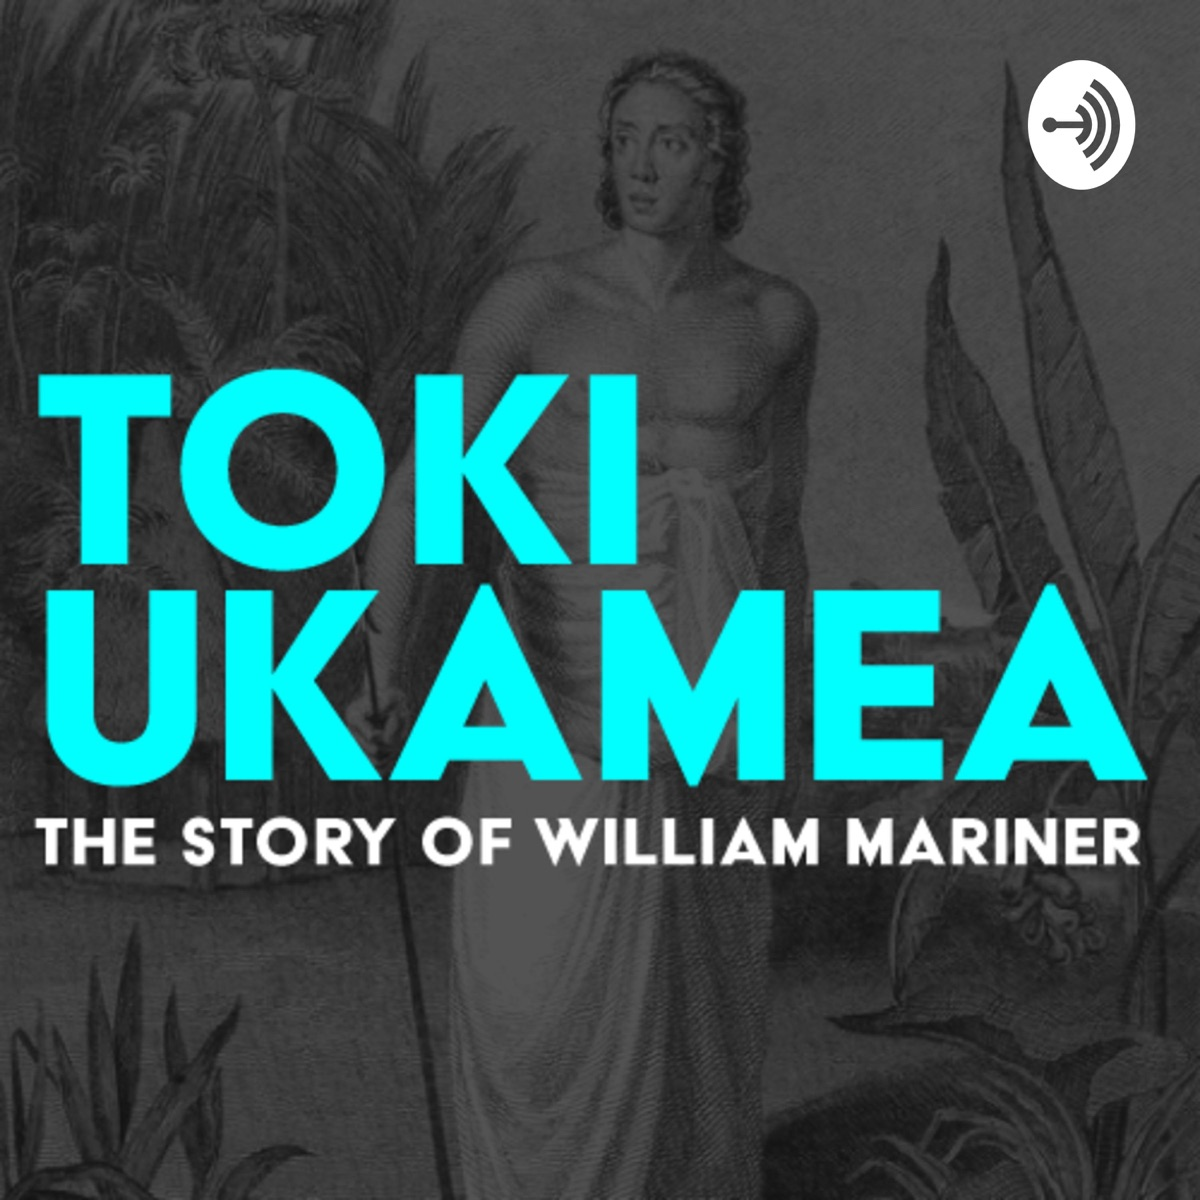 Toki Ukamea: The story of William Mariner